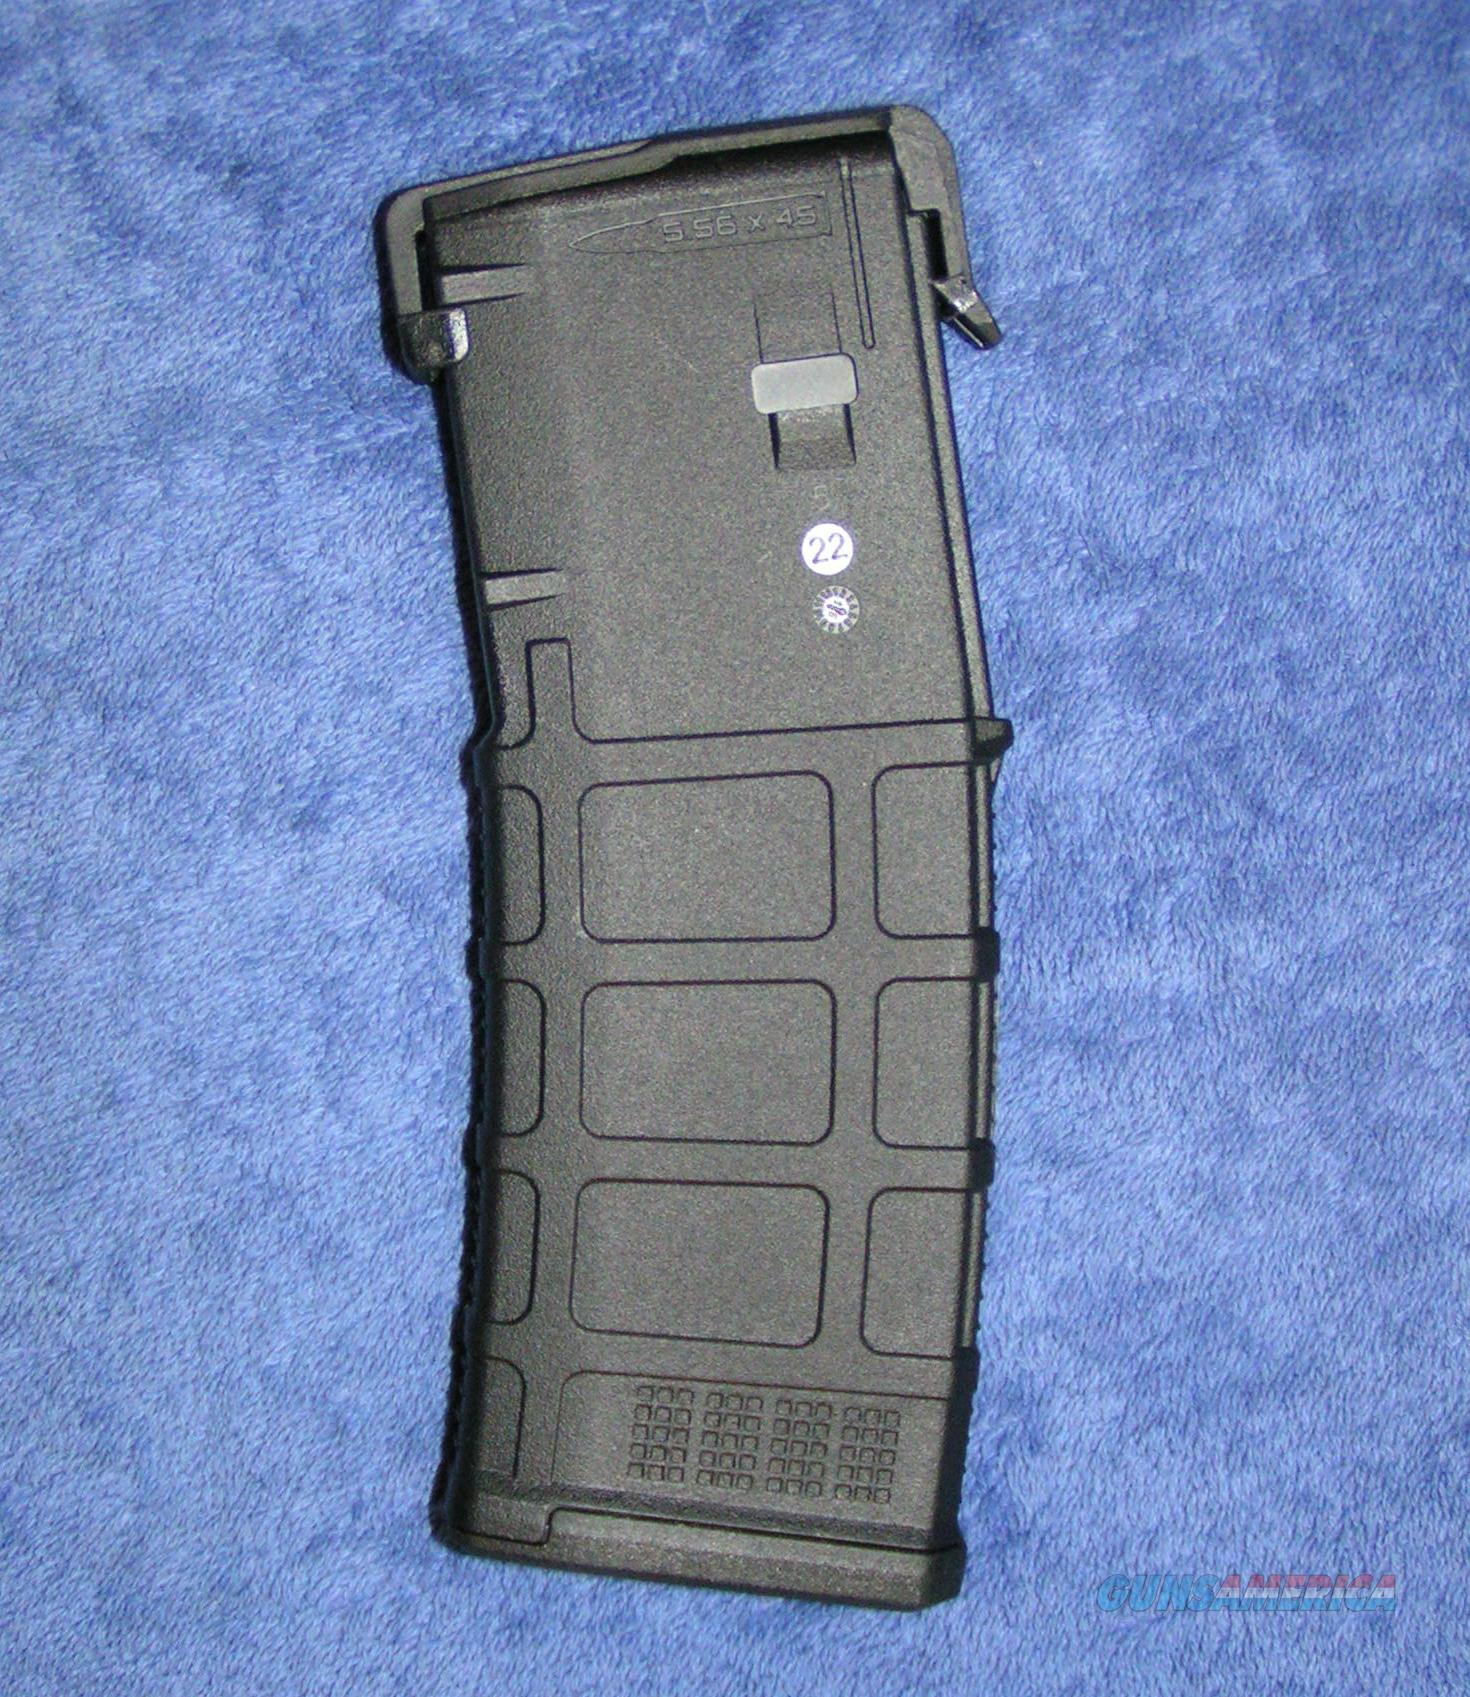 3 Magpul 30 round window mags Pmag Gen 3 AR15 NEW $15 each  Non-Guns > Magazines & Clips > Rifle Magazines > AR-15 Type